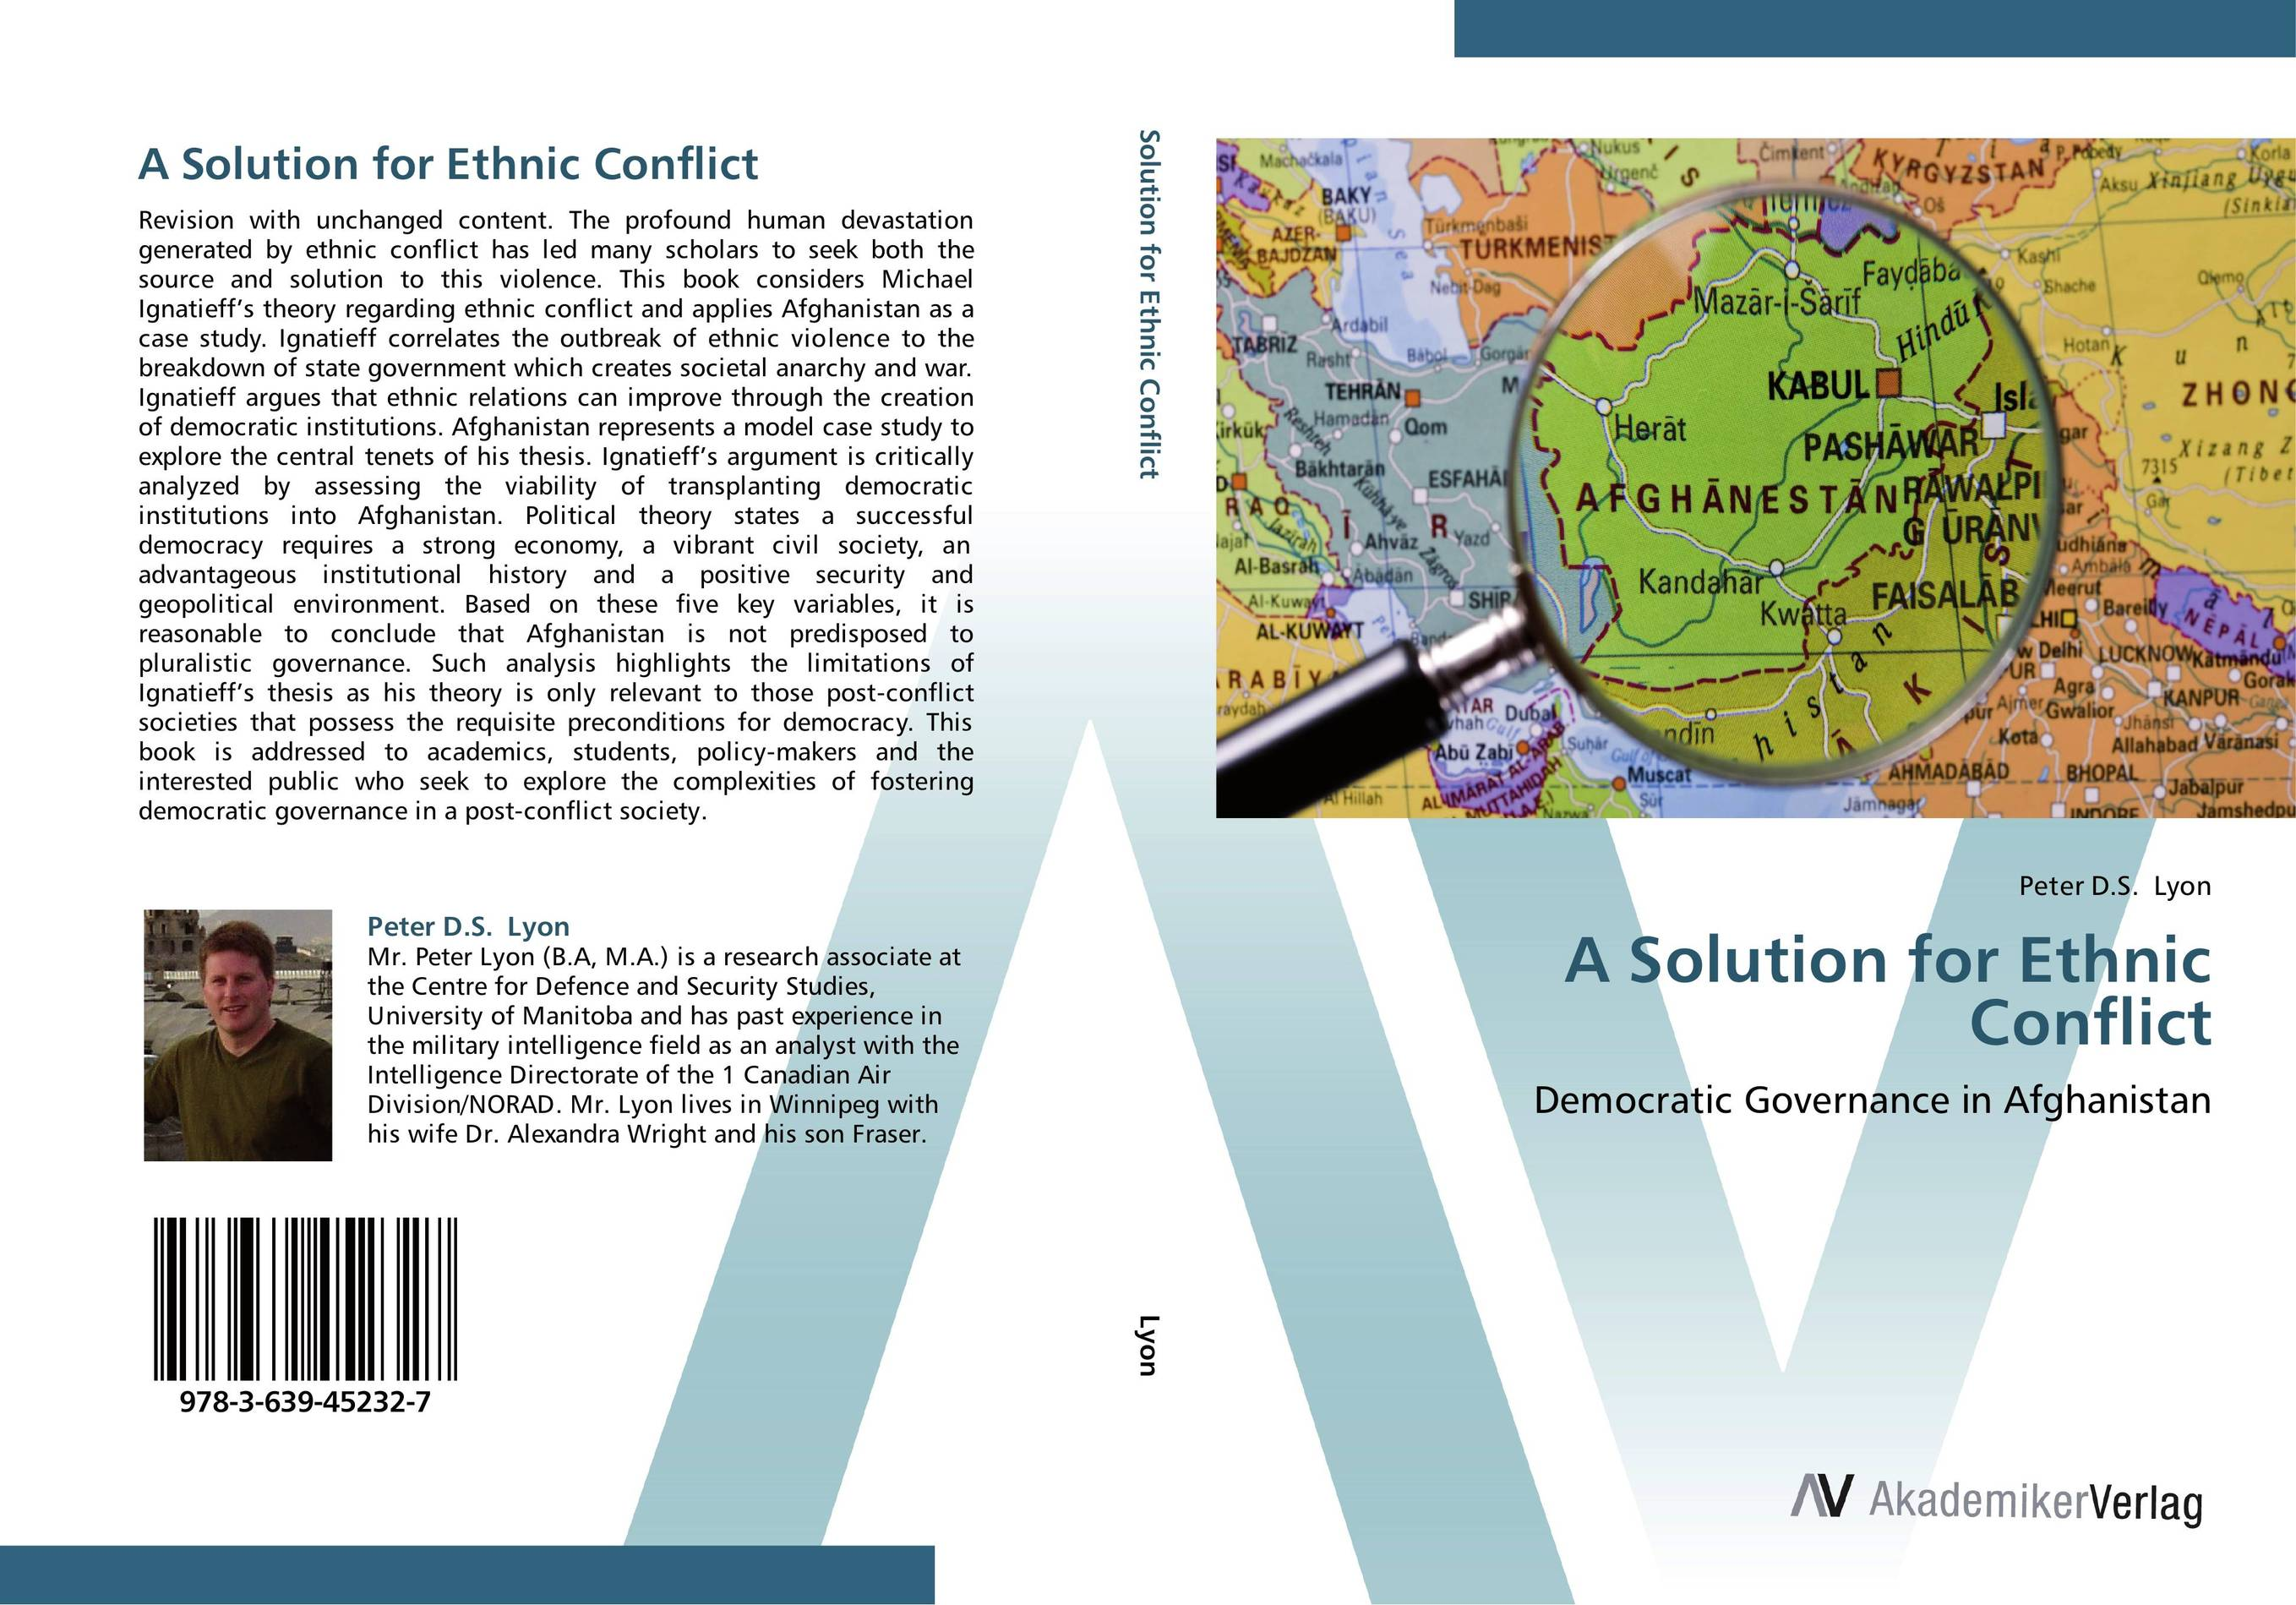 A Solution for Ethnic Conflict trans border ethnic hegemony and political conflict in africa